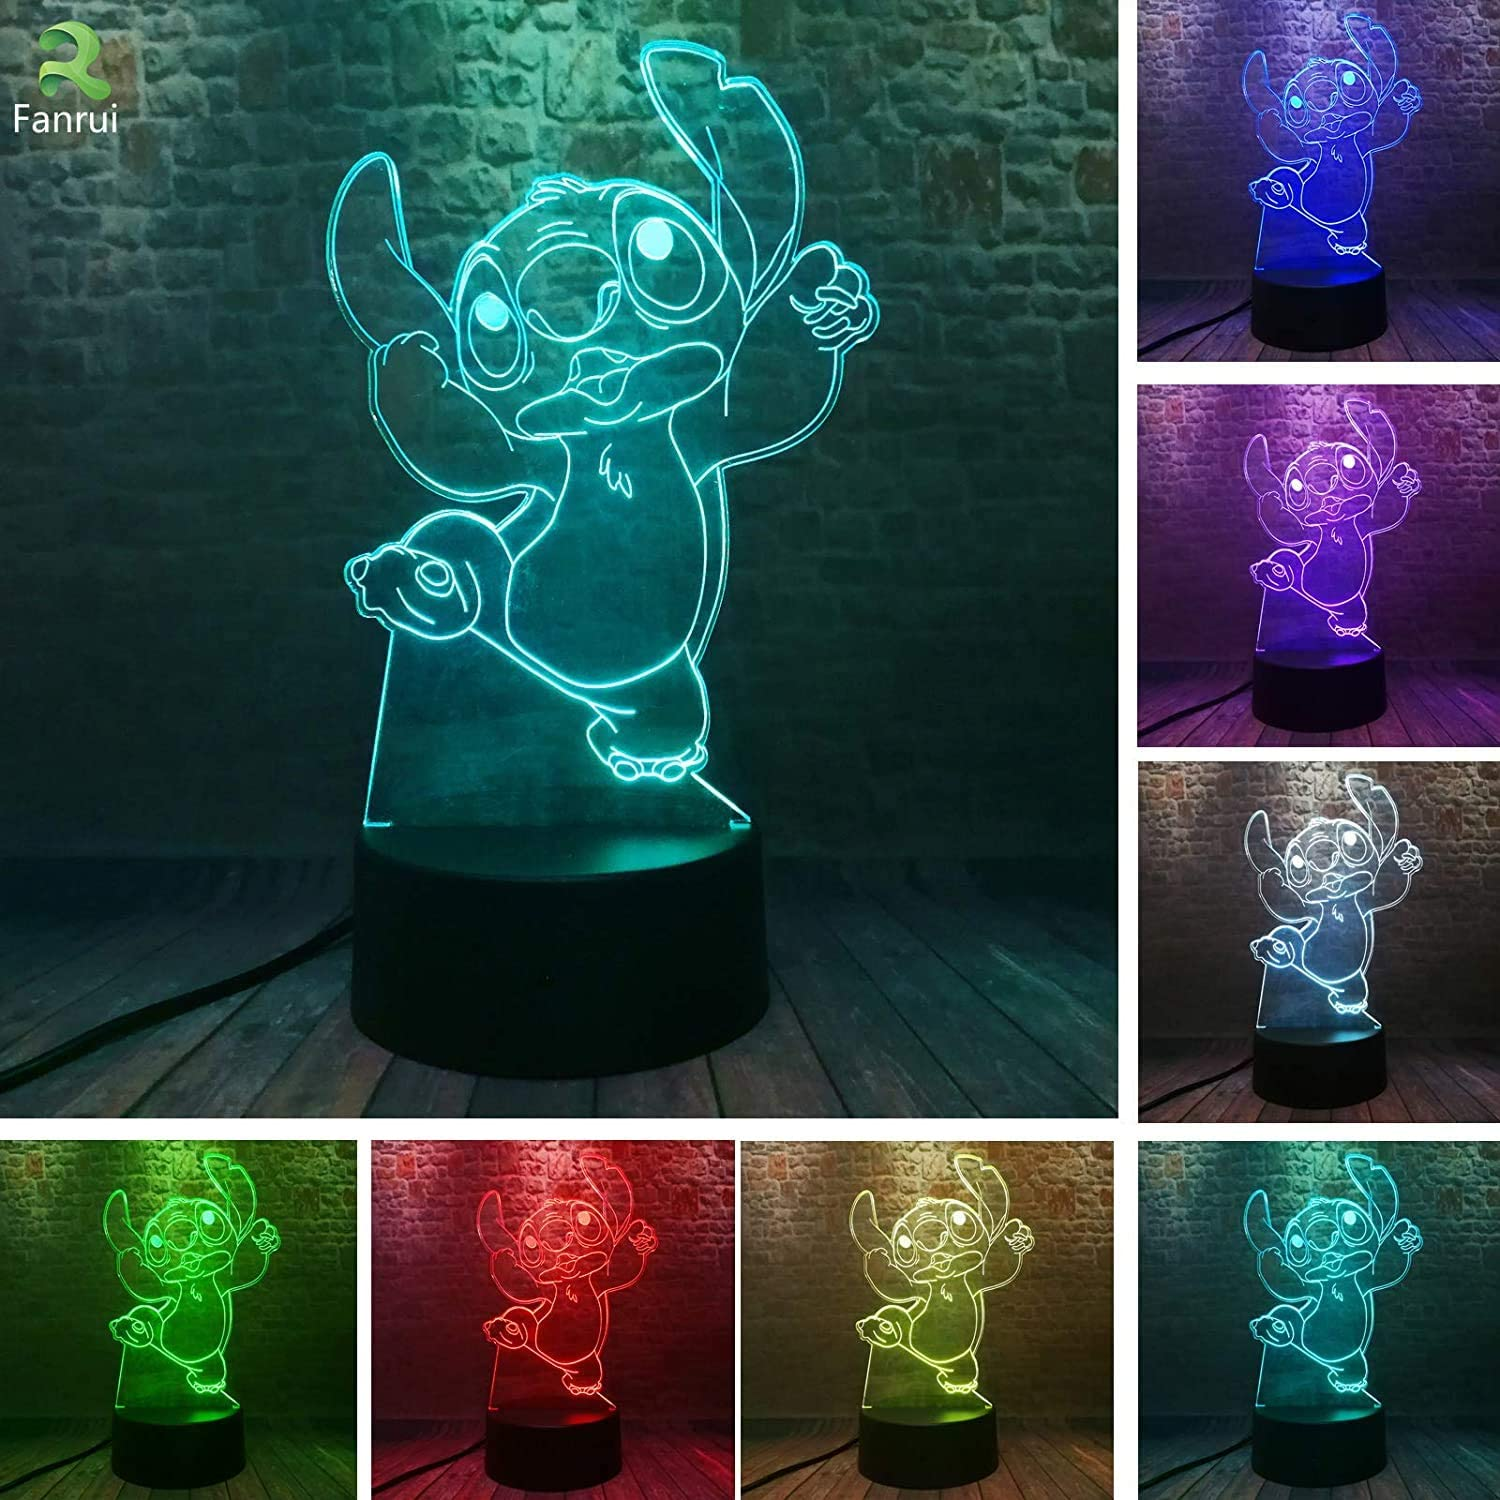 Fanrui Lilo and Stitch Elvis Teddy Stitch Dog Figurine Light Lamp Kawaii Dancing Jumping Figure Action 7 Color Change IR Remote USB Touch Night Lights Home Roon Decor Child Kids Baby Xmas Gifts